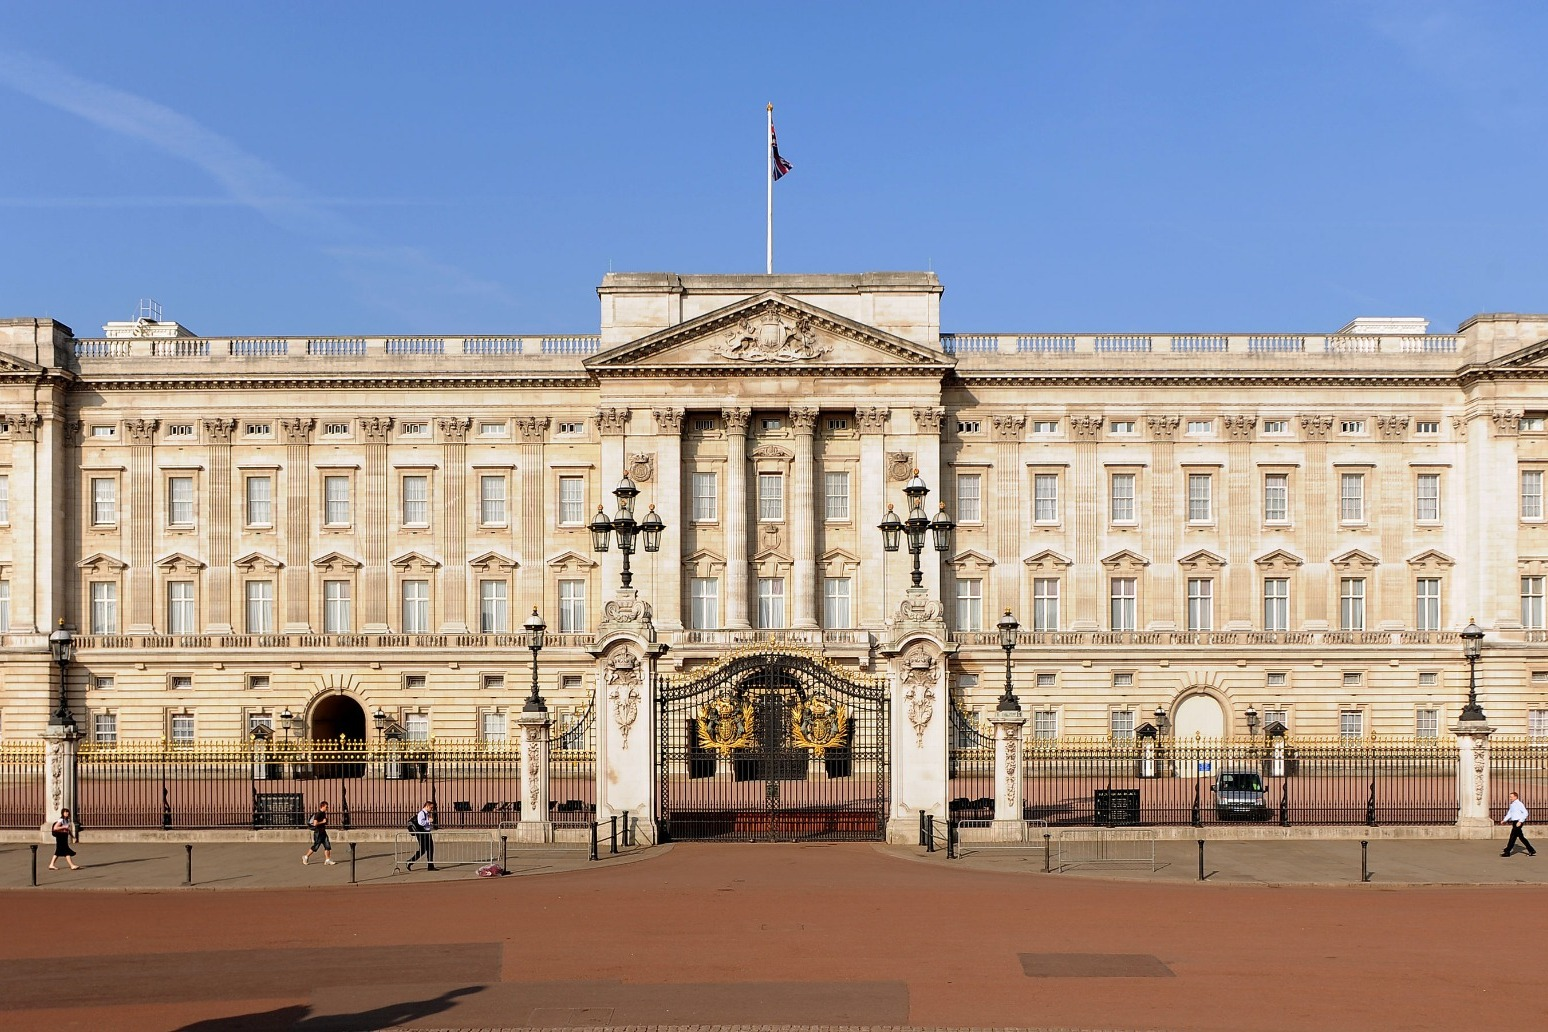 Buckingham Palace all ready for public picnickers ahead of garden opening